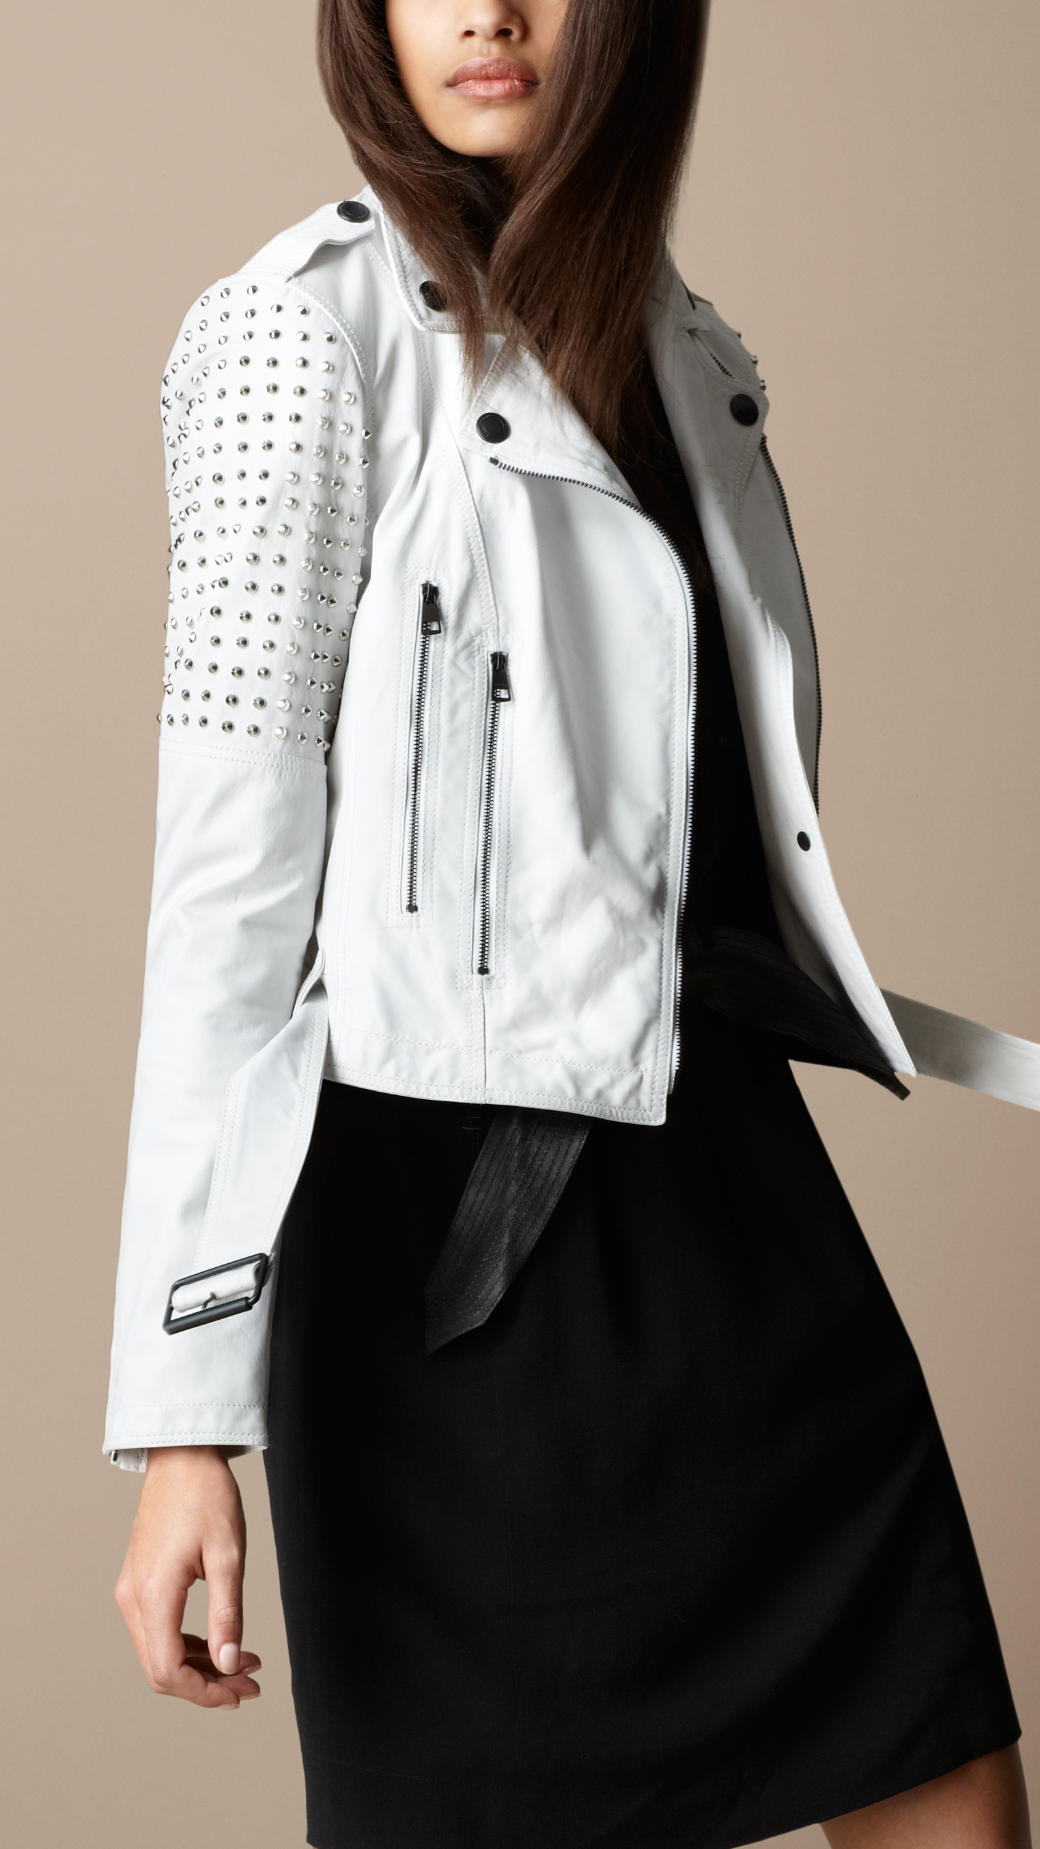 All white leather jacket